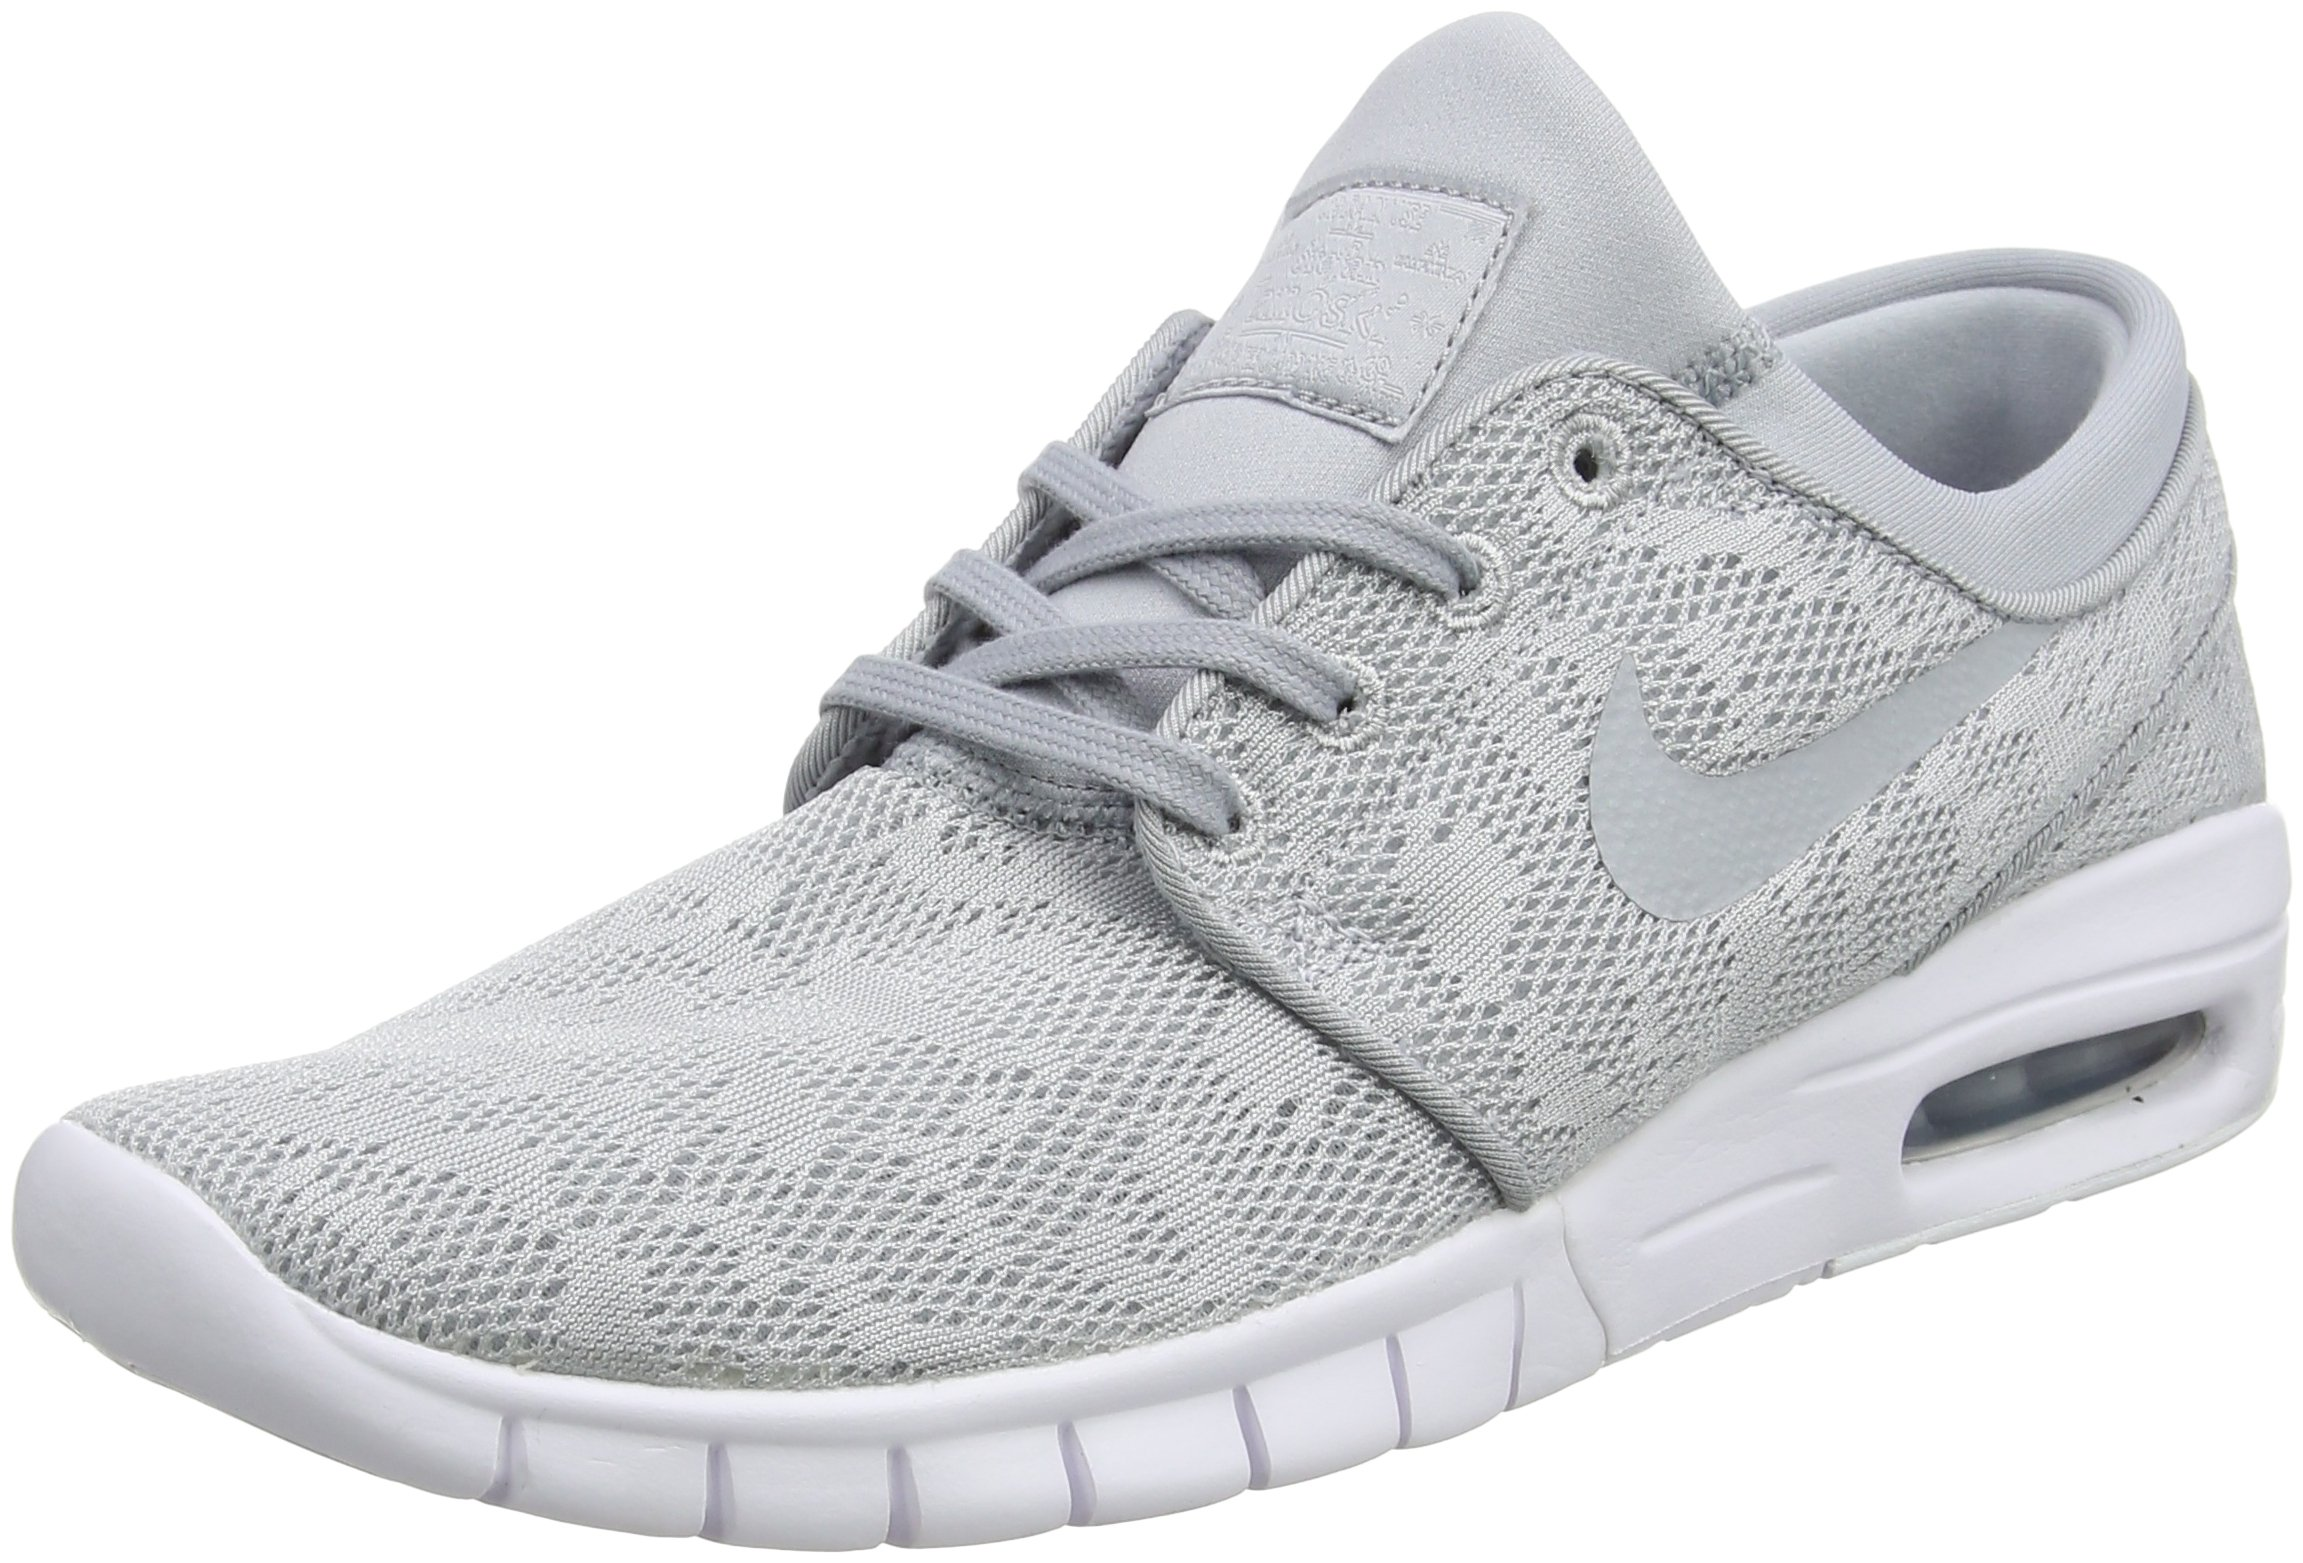 cheap for discount c6036 fce4f Galleon - Nike Men s Stefan Janoski Max Wolf Grey Wolf GreySneakers - 8 D(M)  US